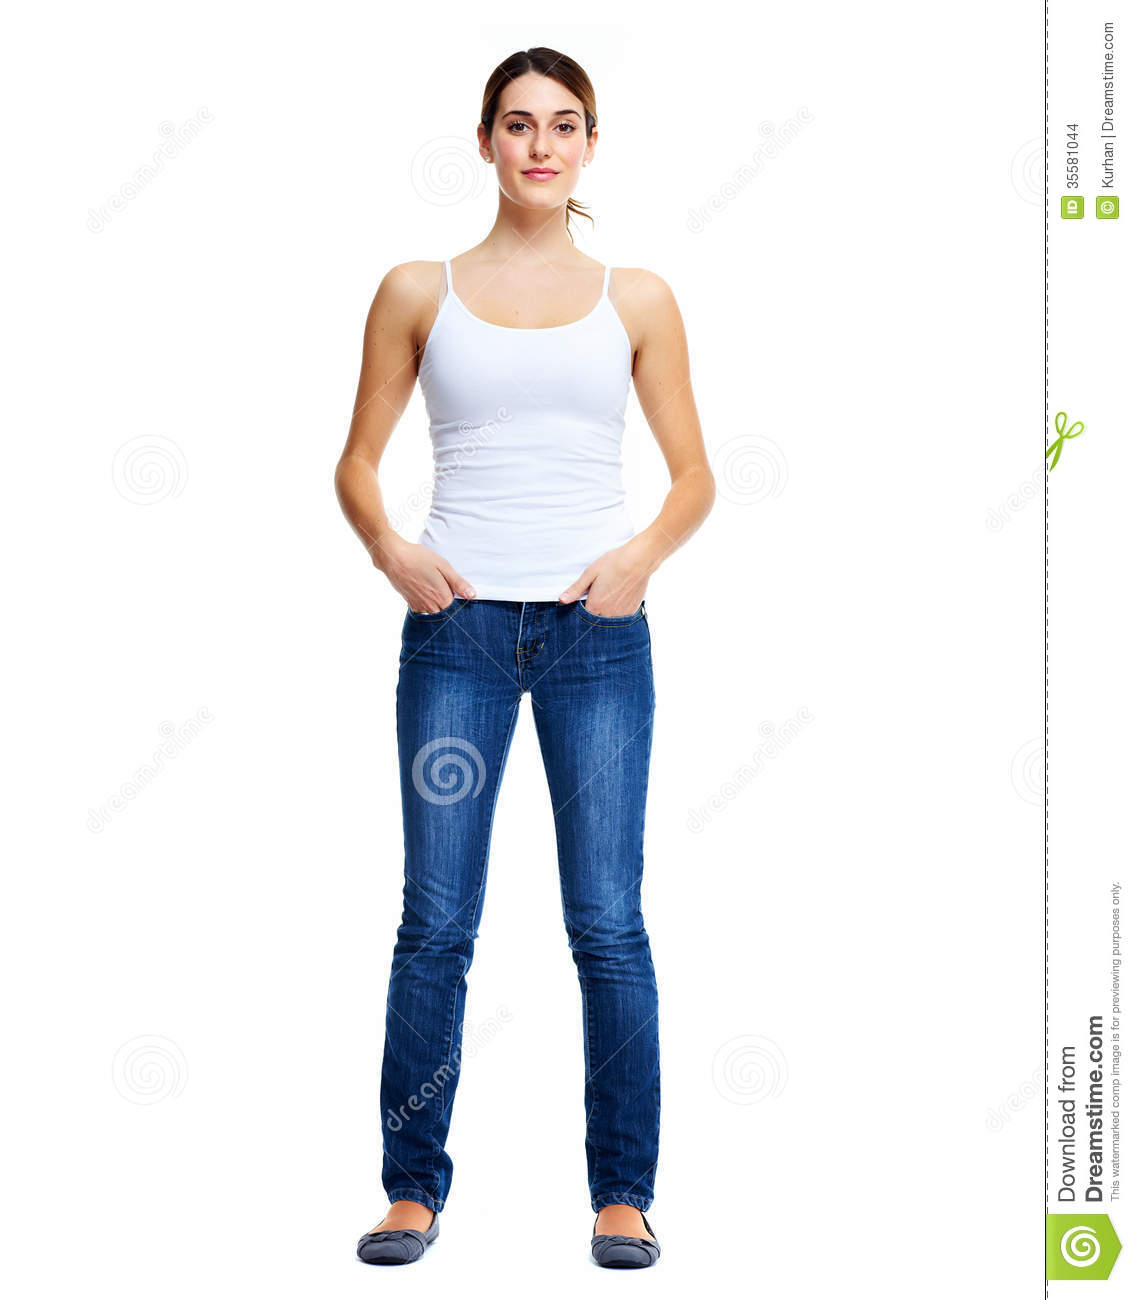 standing woman stock photo image of student lifestyle 35581044